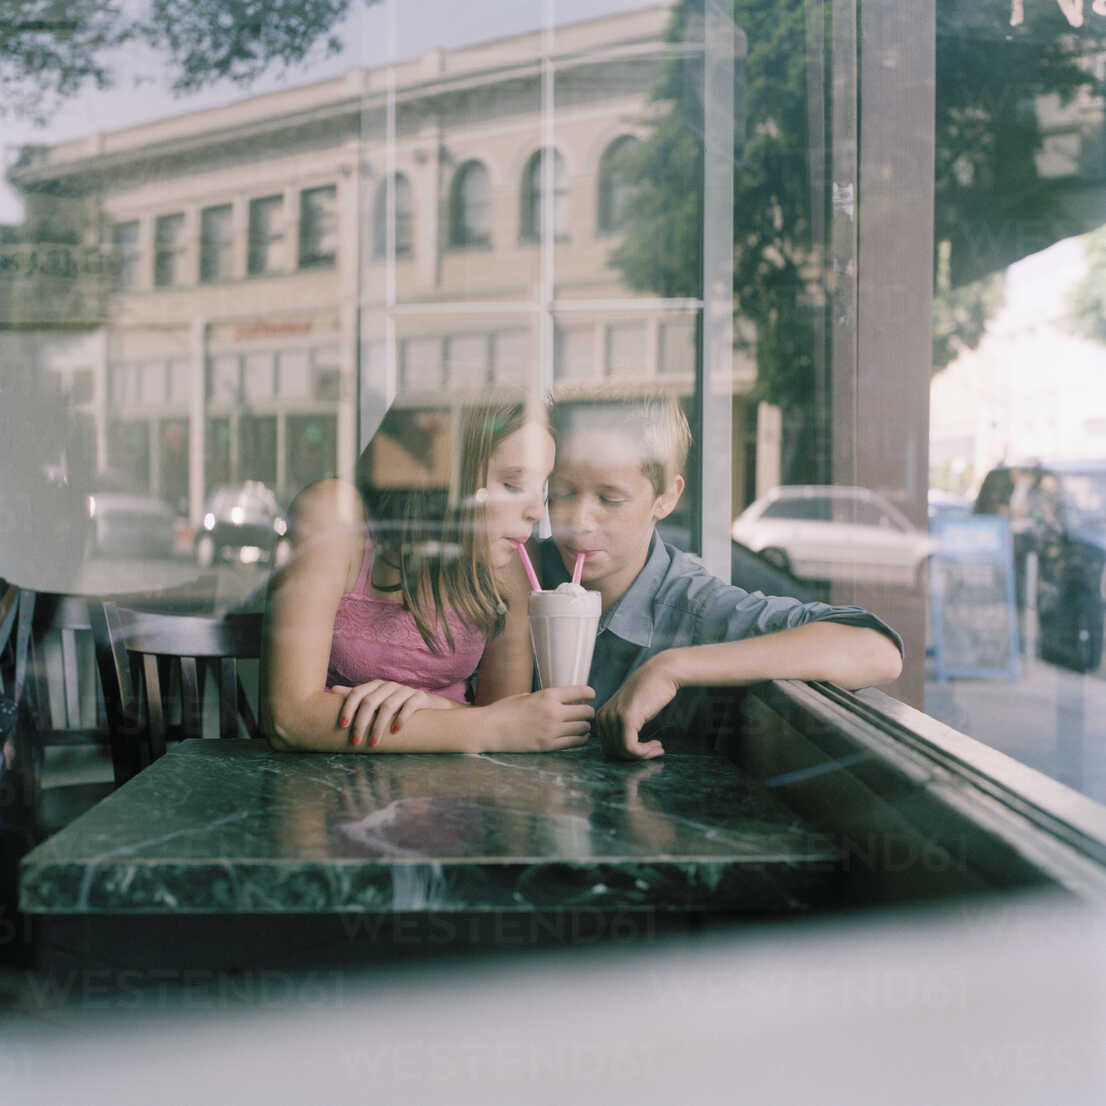 A young teenage couple sharing a milkshake at a diner, viewed through window - FSIF02950 - fStop/Westend61